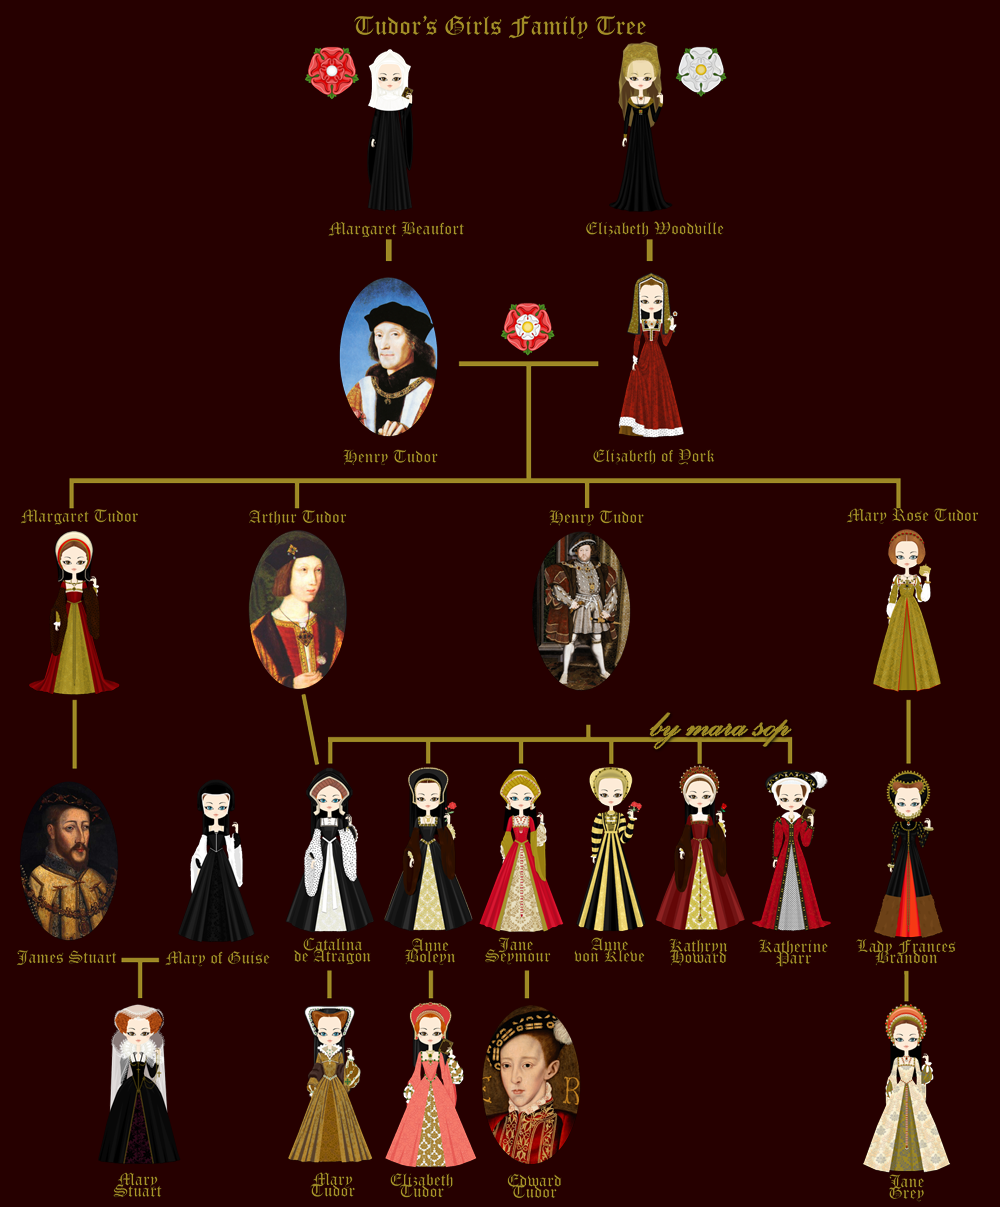 The complete family tree of Tudor Queens